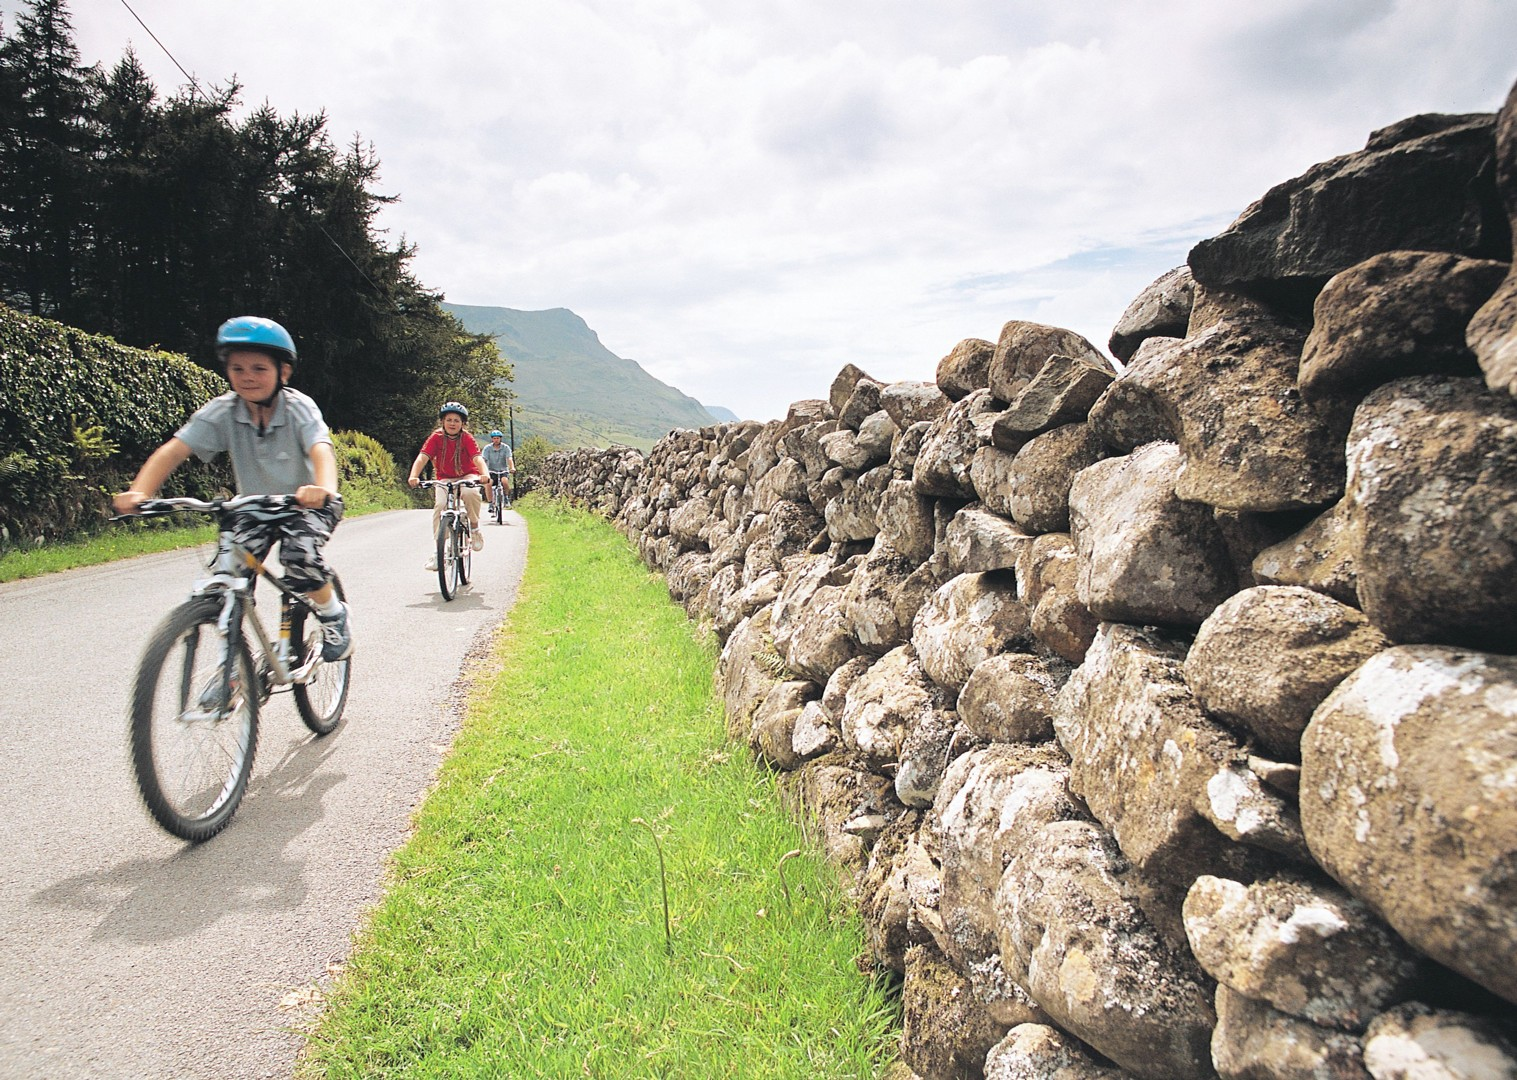 hadrians-wall-cycling-holiday-family-supported.jpg - UK - Hadrian's Cycleway 4 Day - Supported Family Cycling Holiday - Family Cycling